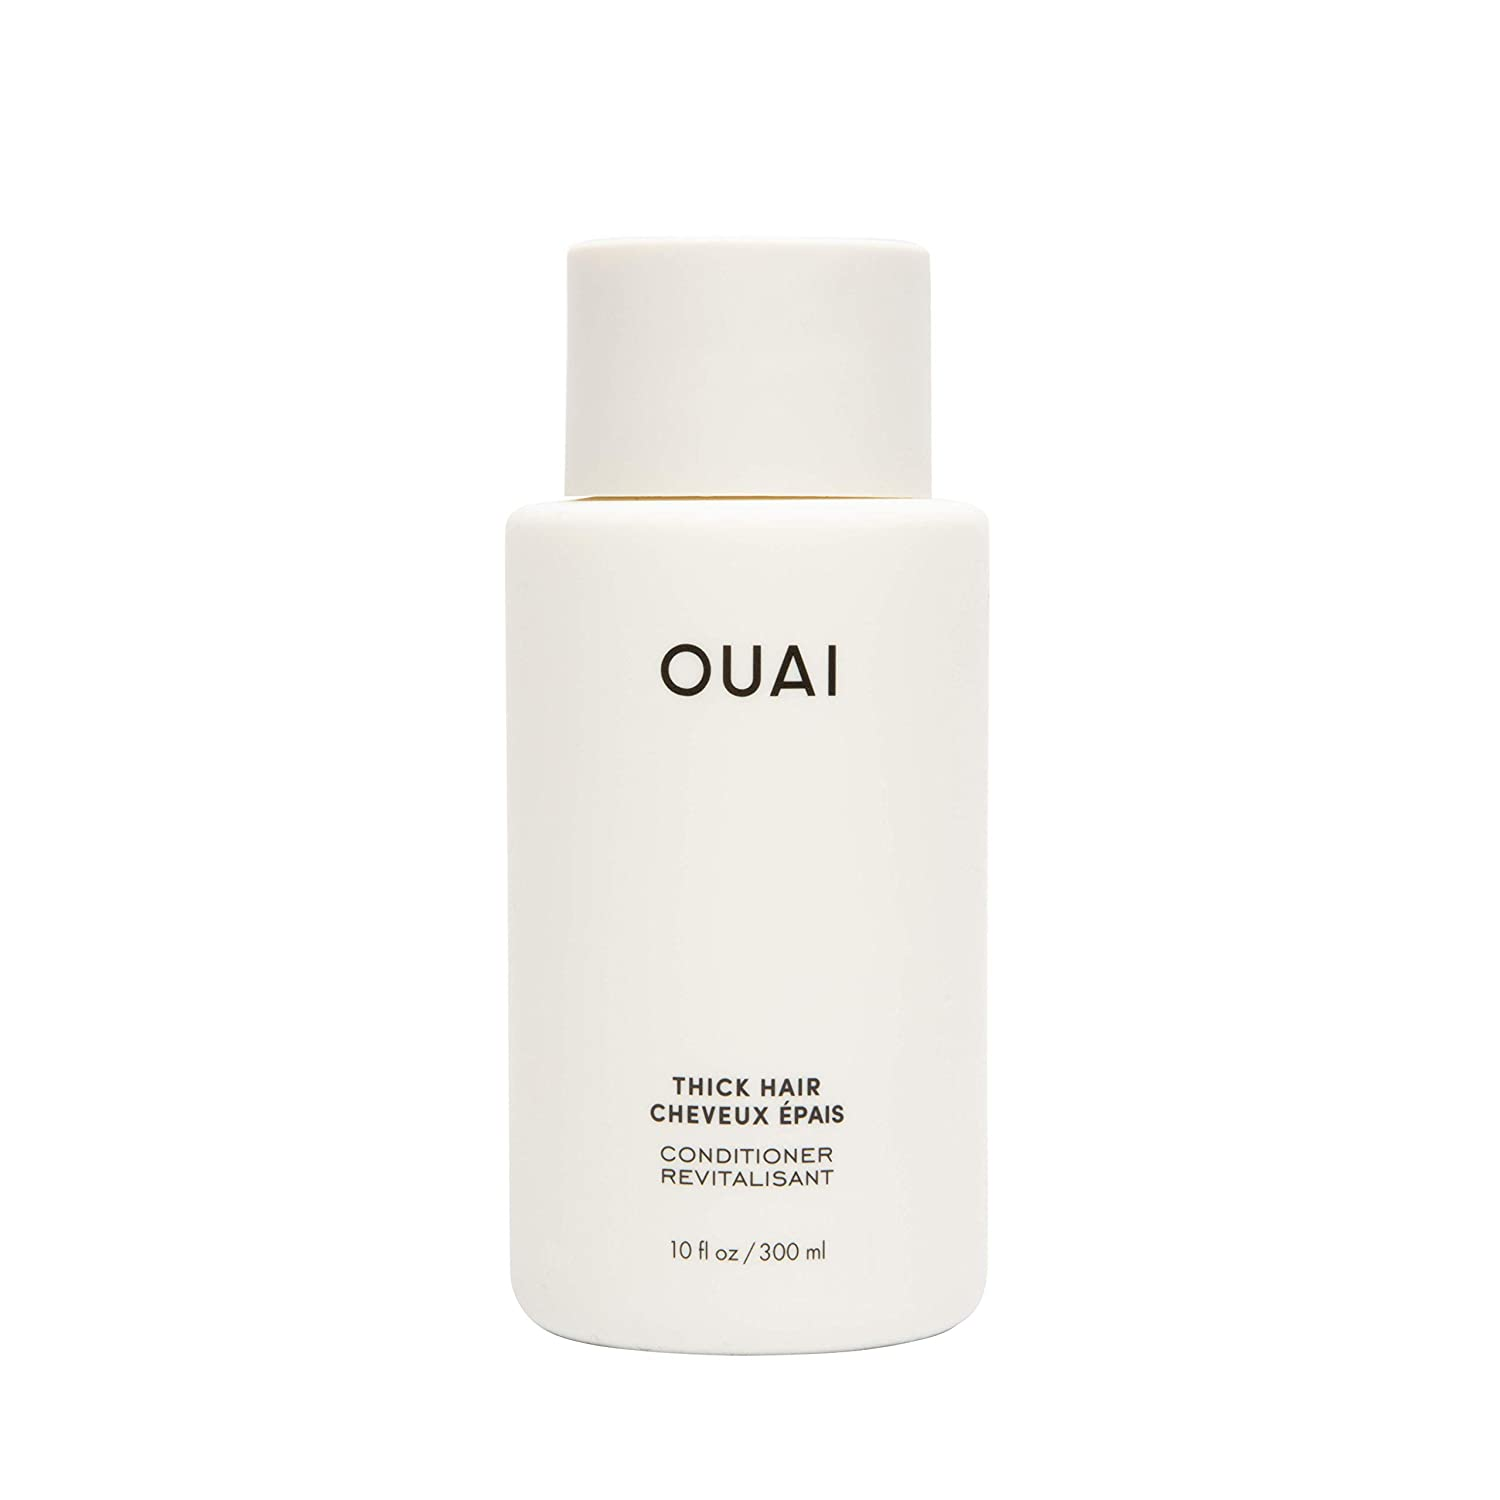 OUAI Thick Conditioner. Strengthening Keratin, Marshmallow Root, Shea Butter and Avocado Oil Nourish Dry, Thick Hair and Calm Frizz. Free from Parabens, Sulfates and Phthalates (10 oz)